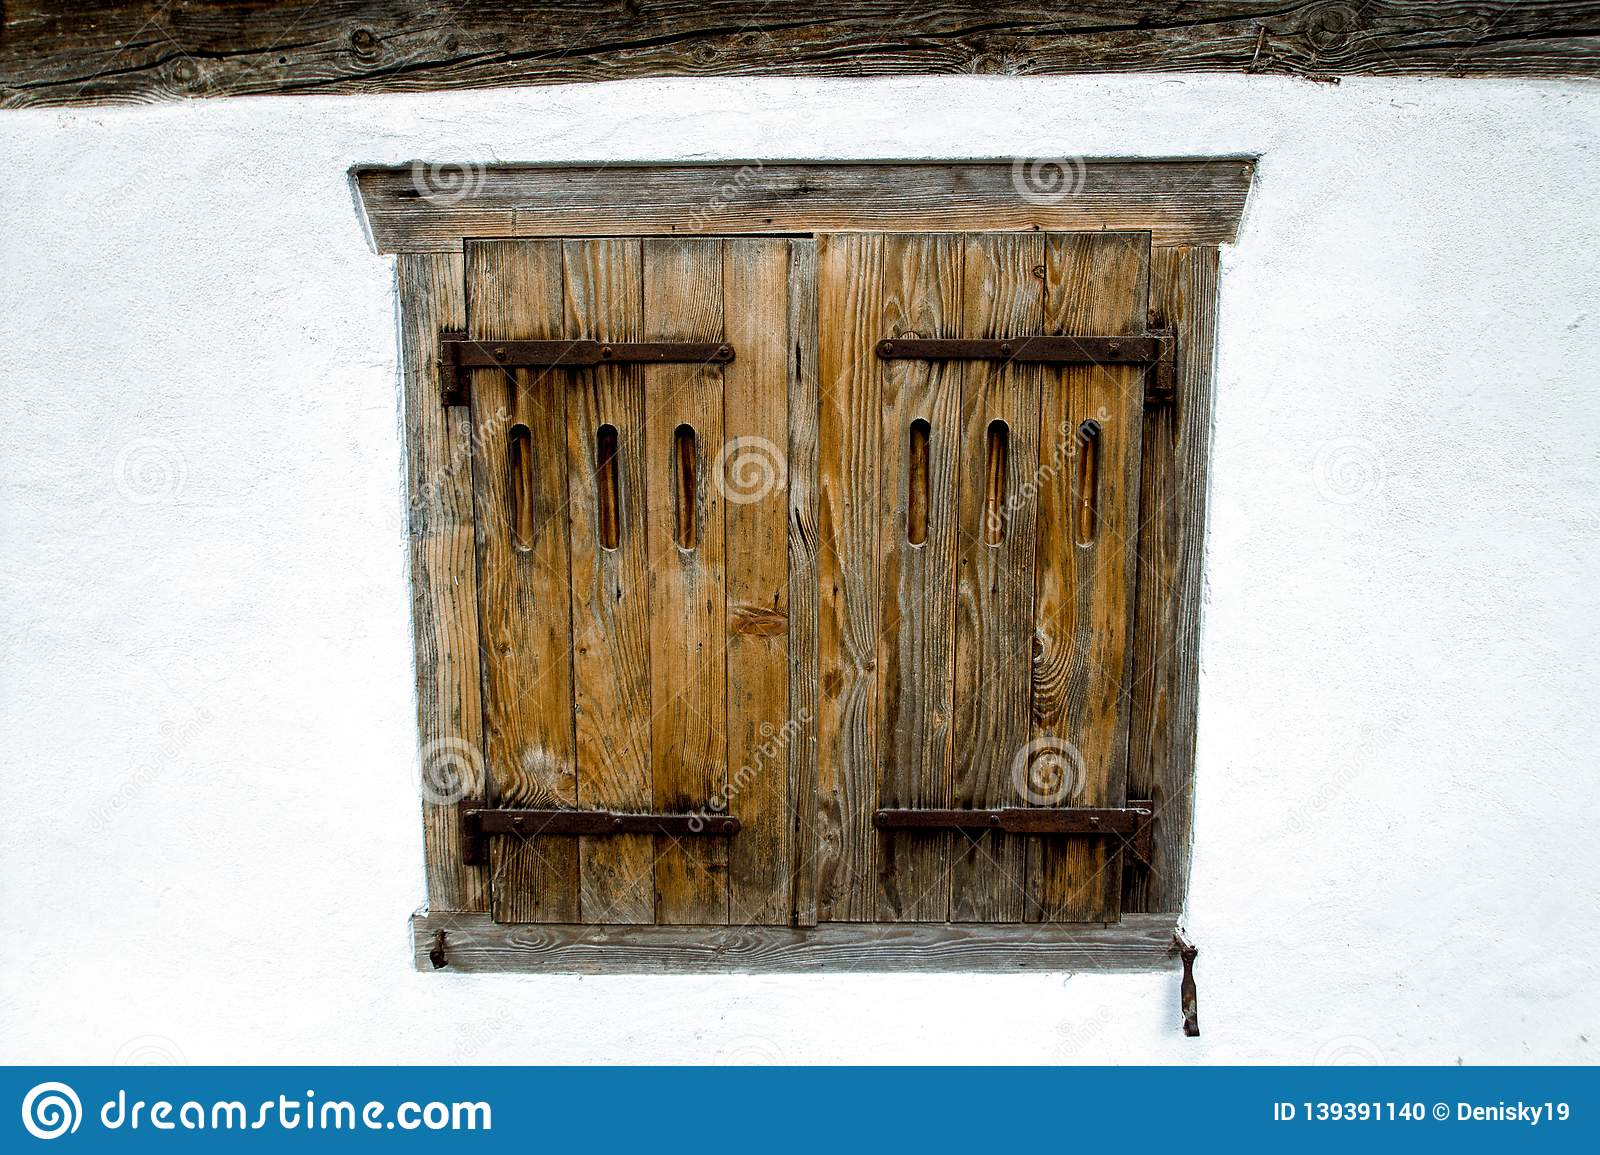 Old wooden window in a white wall. Building of Switzerland.